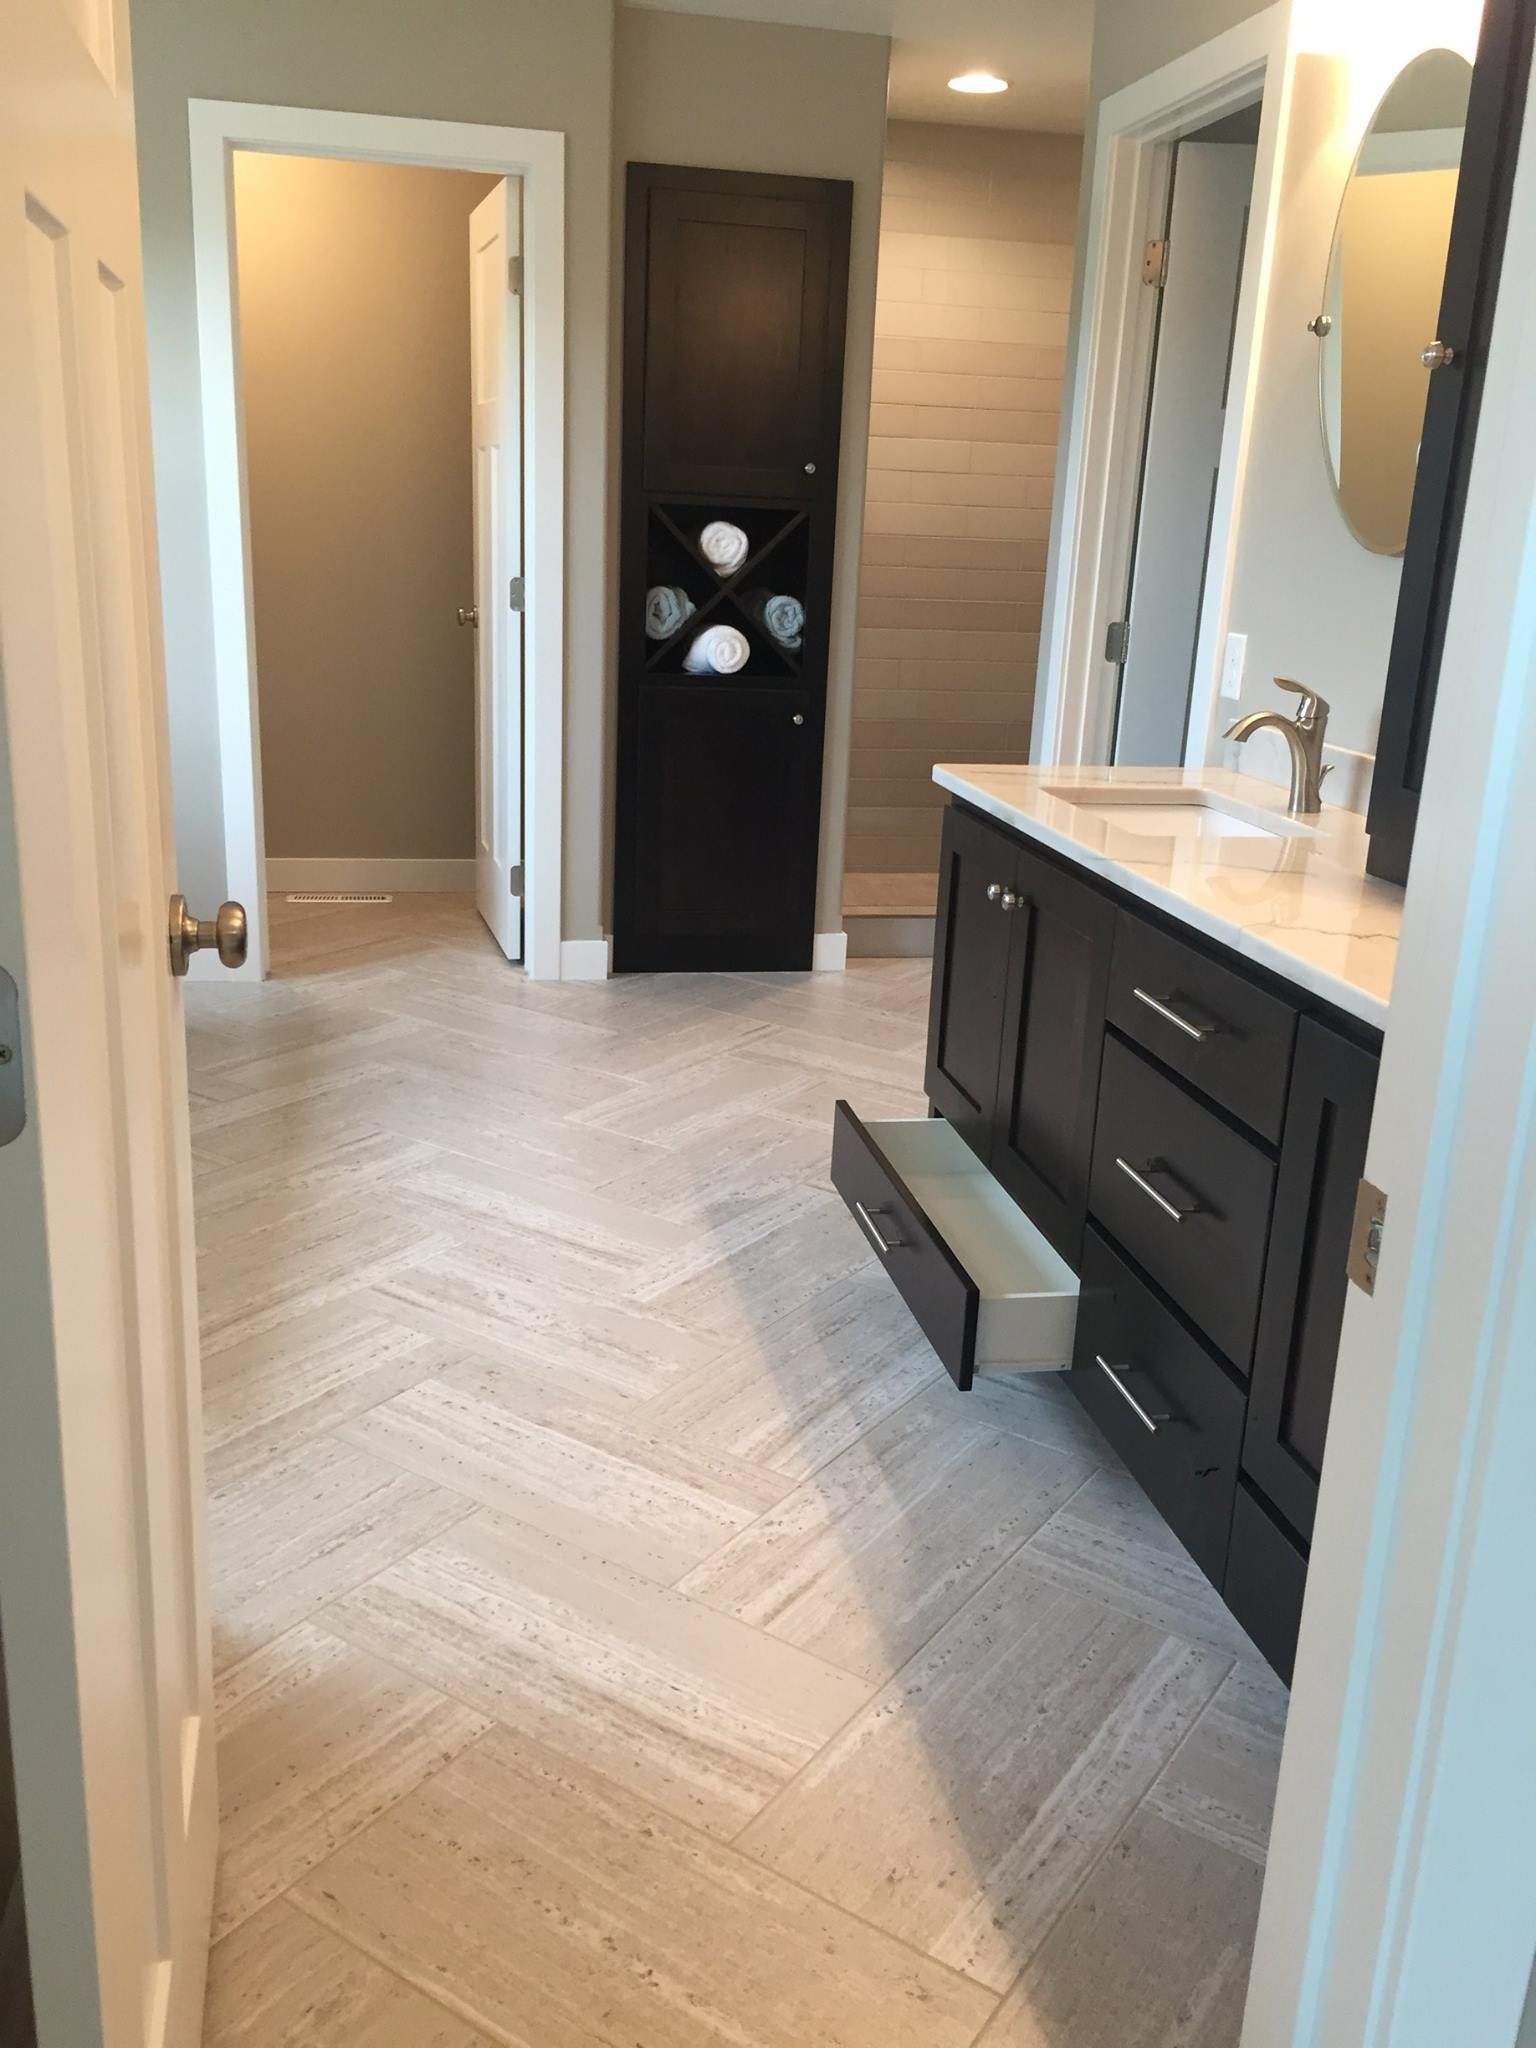 12 X 24 Vinyl Tile Laid In Herringbone Pattern Bathroom Floor Tiles Flooring Vinyl Flooring